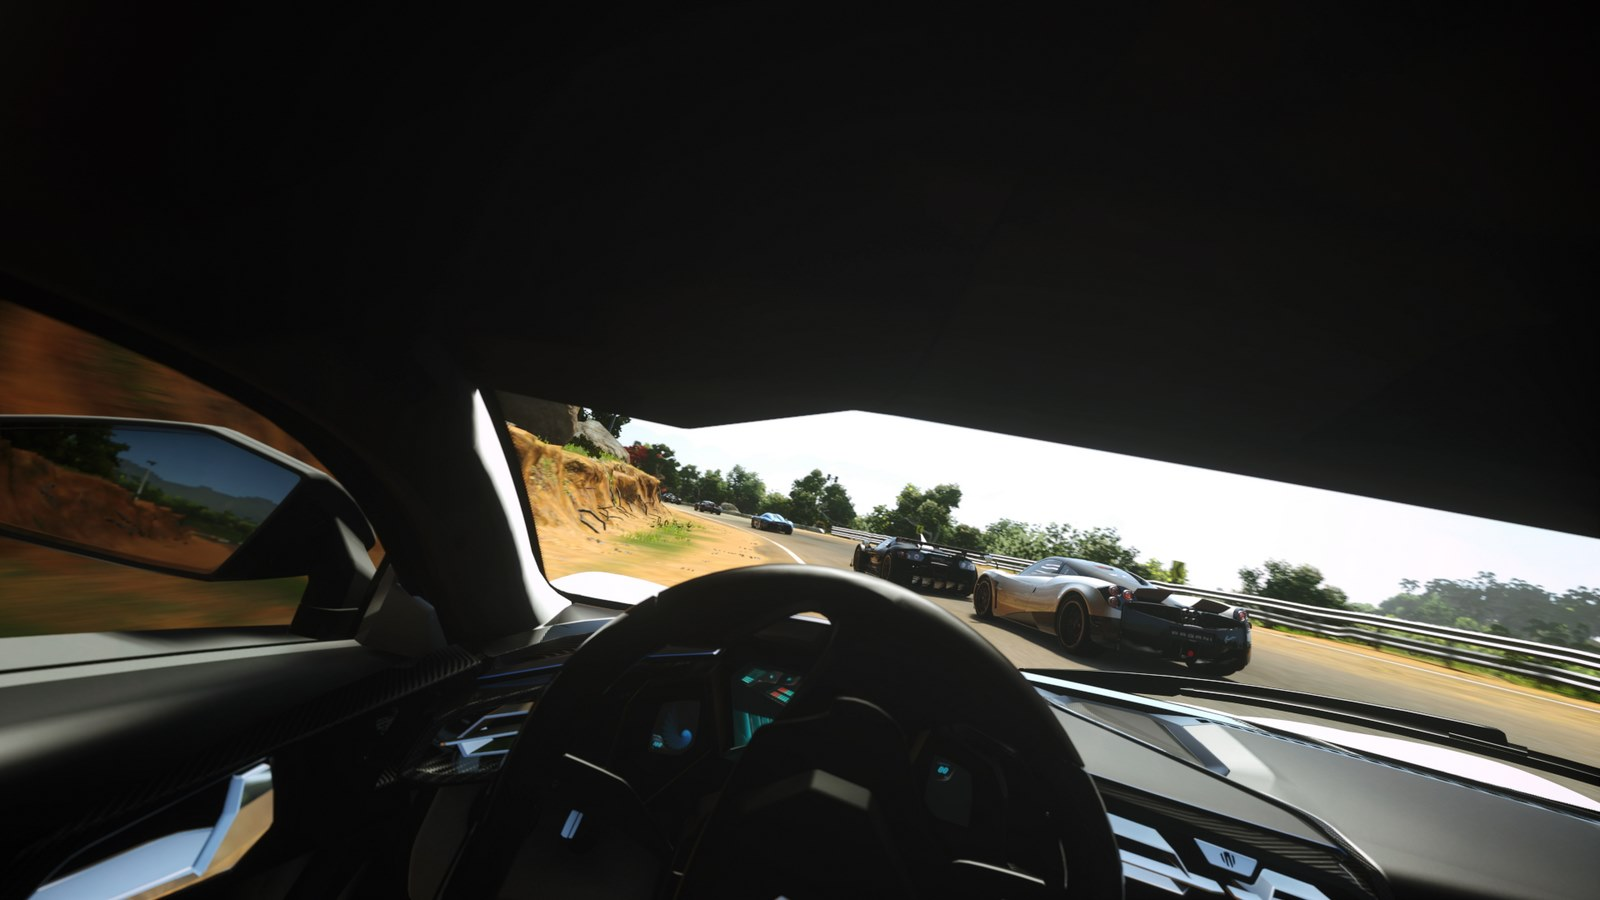 driveclub-vr-screen-playstation-vr-sony-ps4 (6)